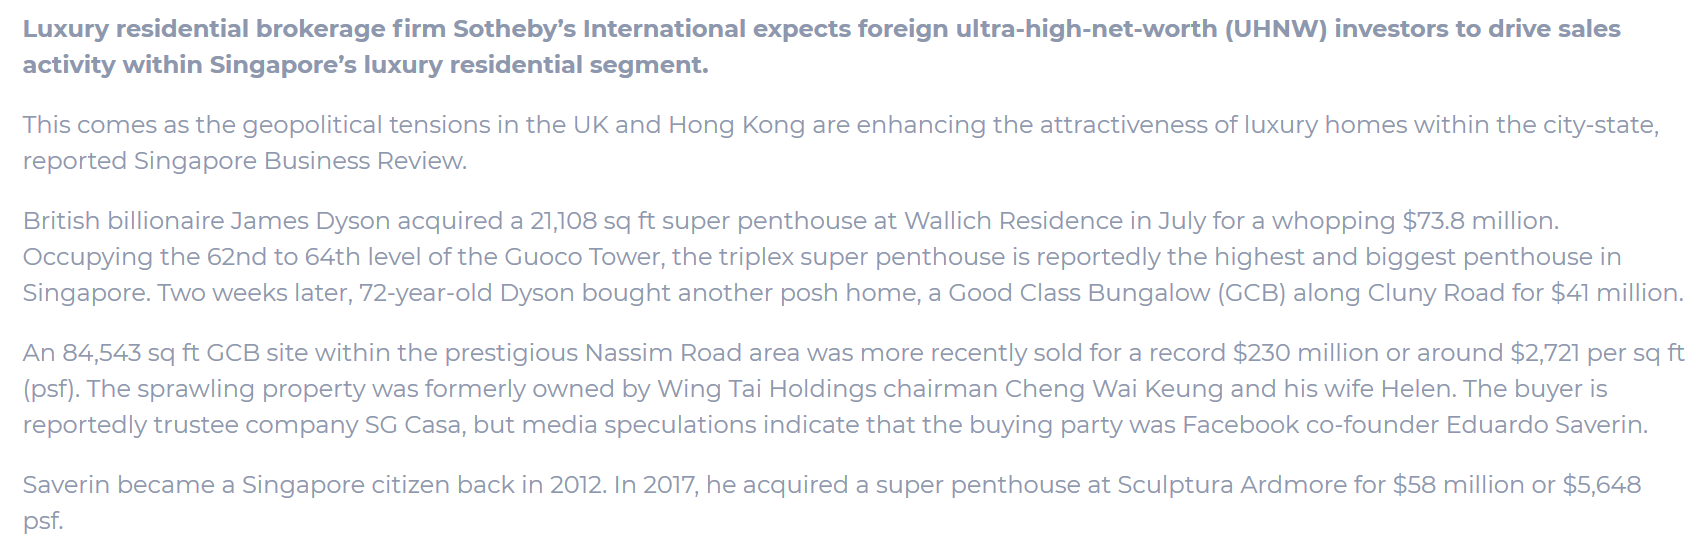 florence-residences-ultra-rich-buys-singapore-homes-1-singapore